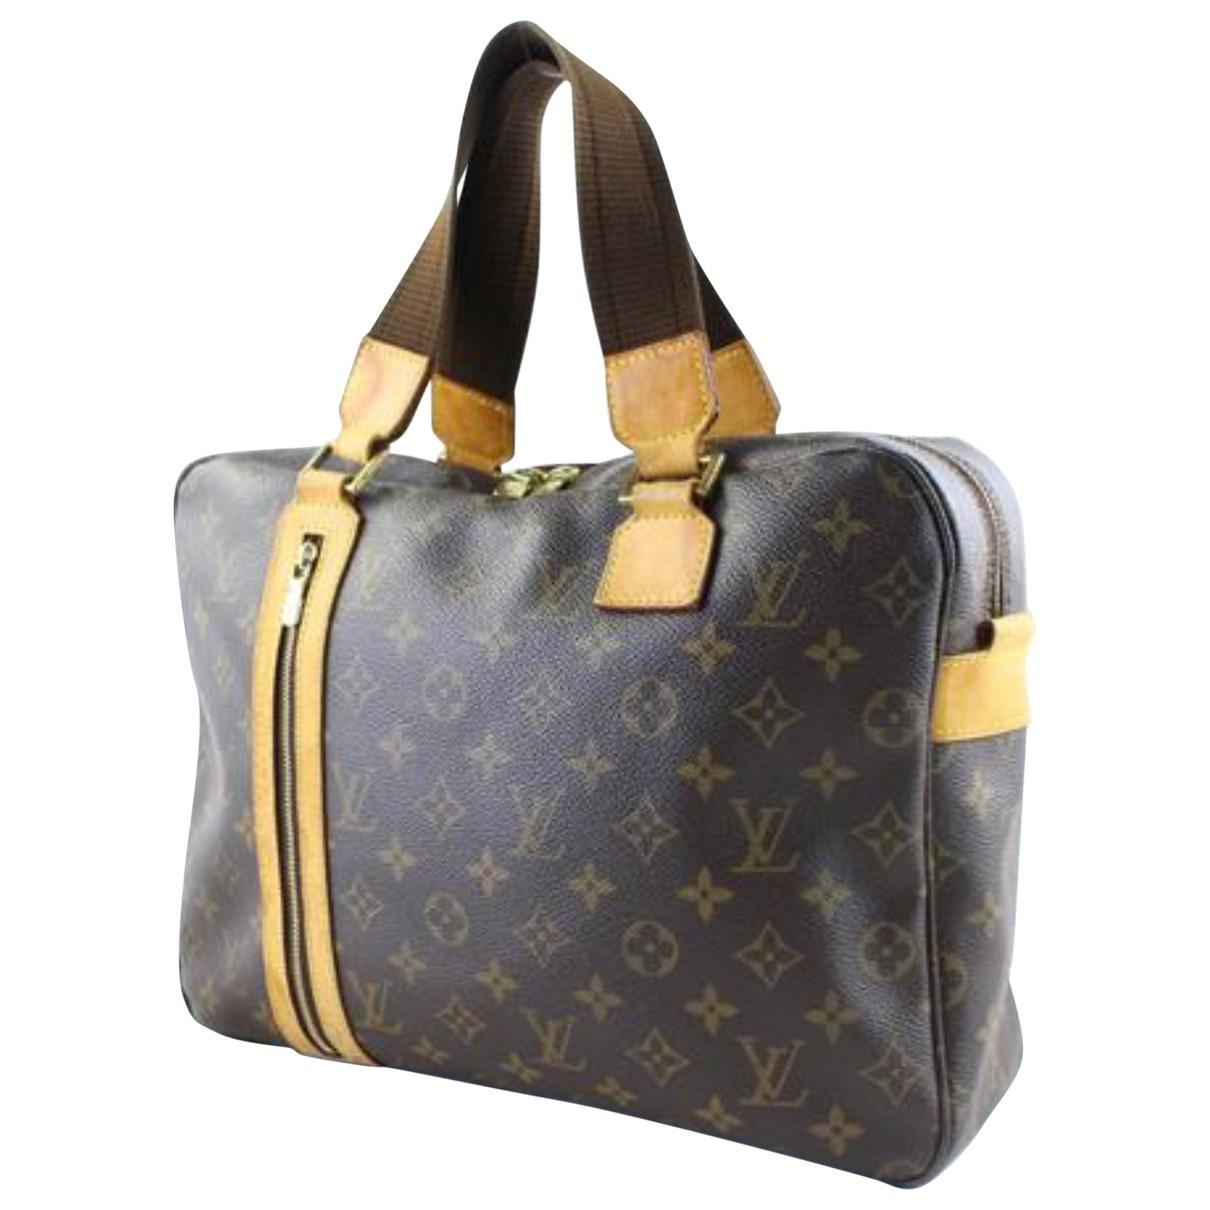 Louis Vuitton Pre-owned - Cloth bag xAeK9Ipl